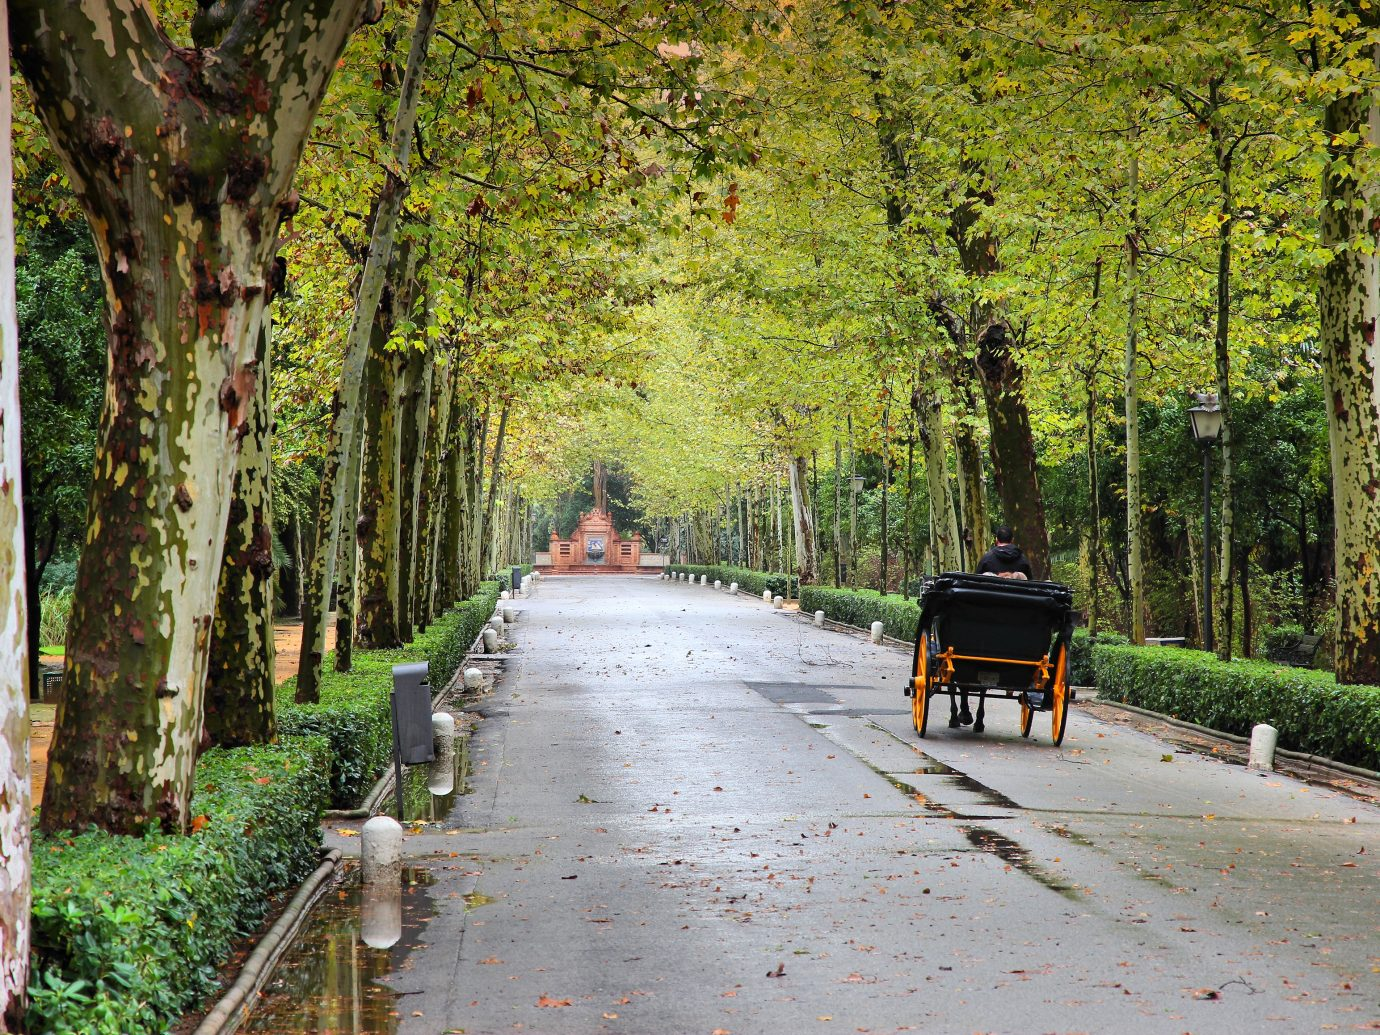 Seville, Spain - famous Maria Luisa park. Plane tree lined alley.